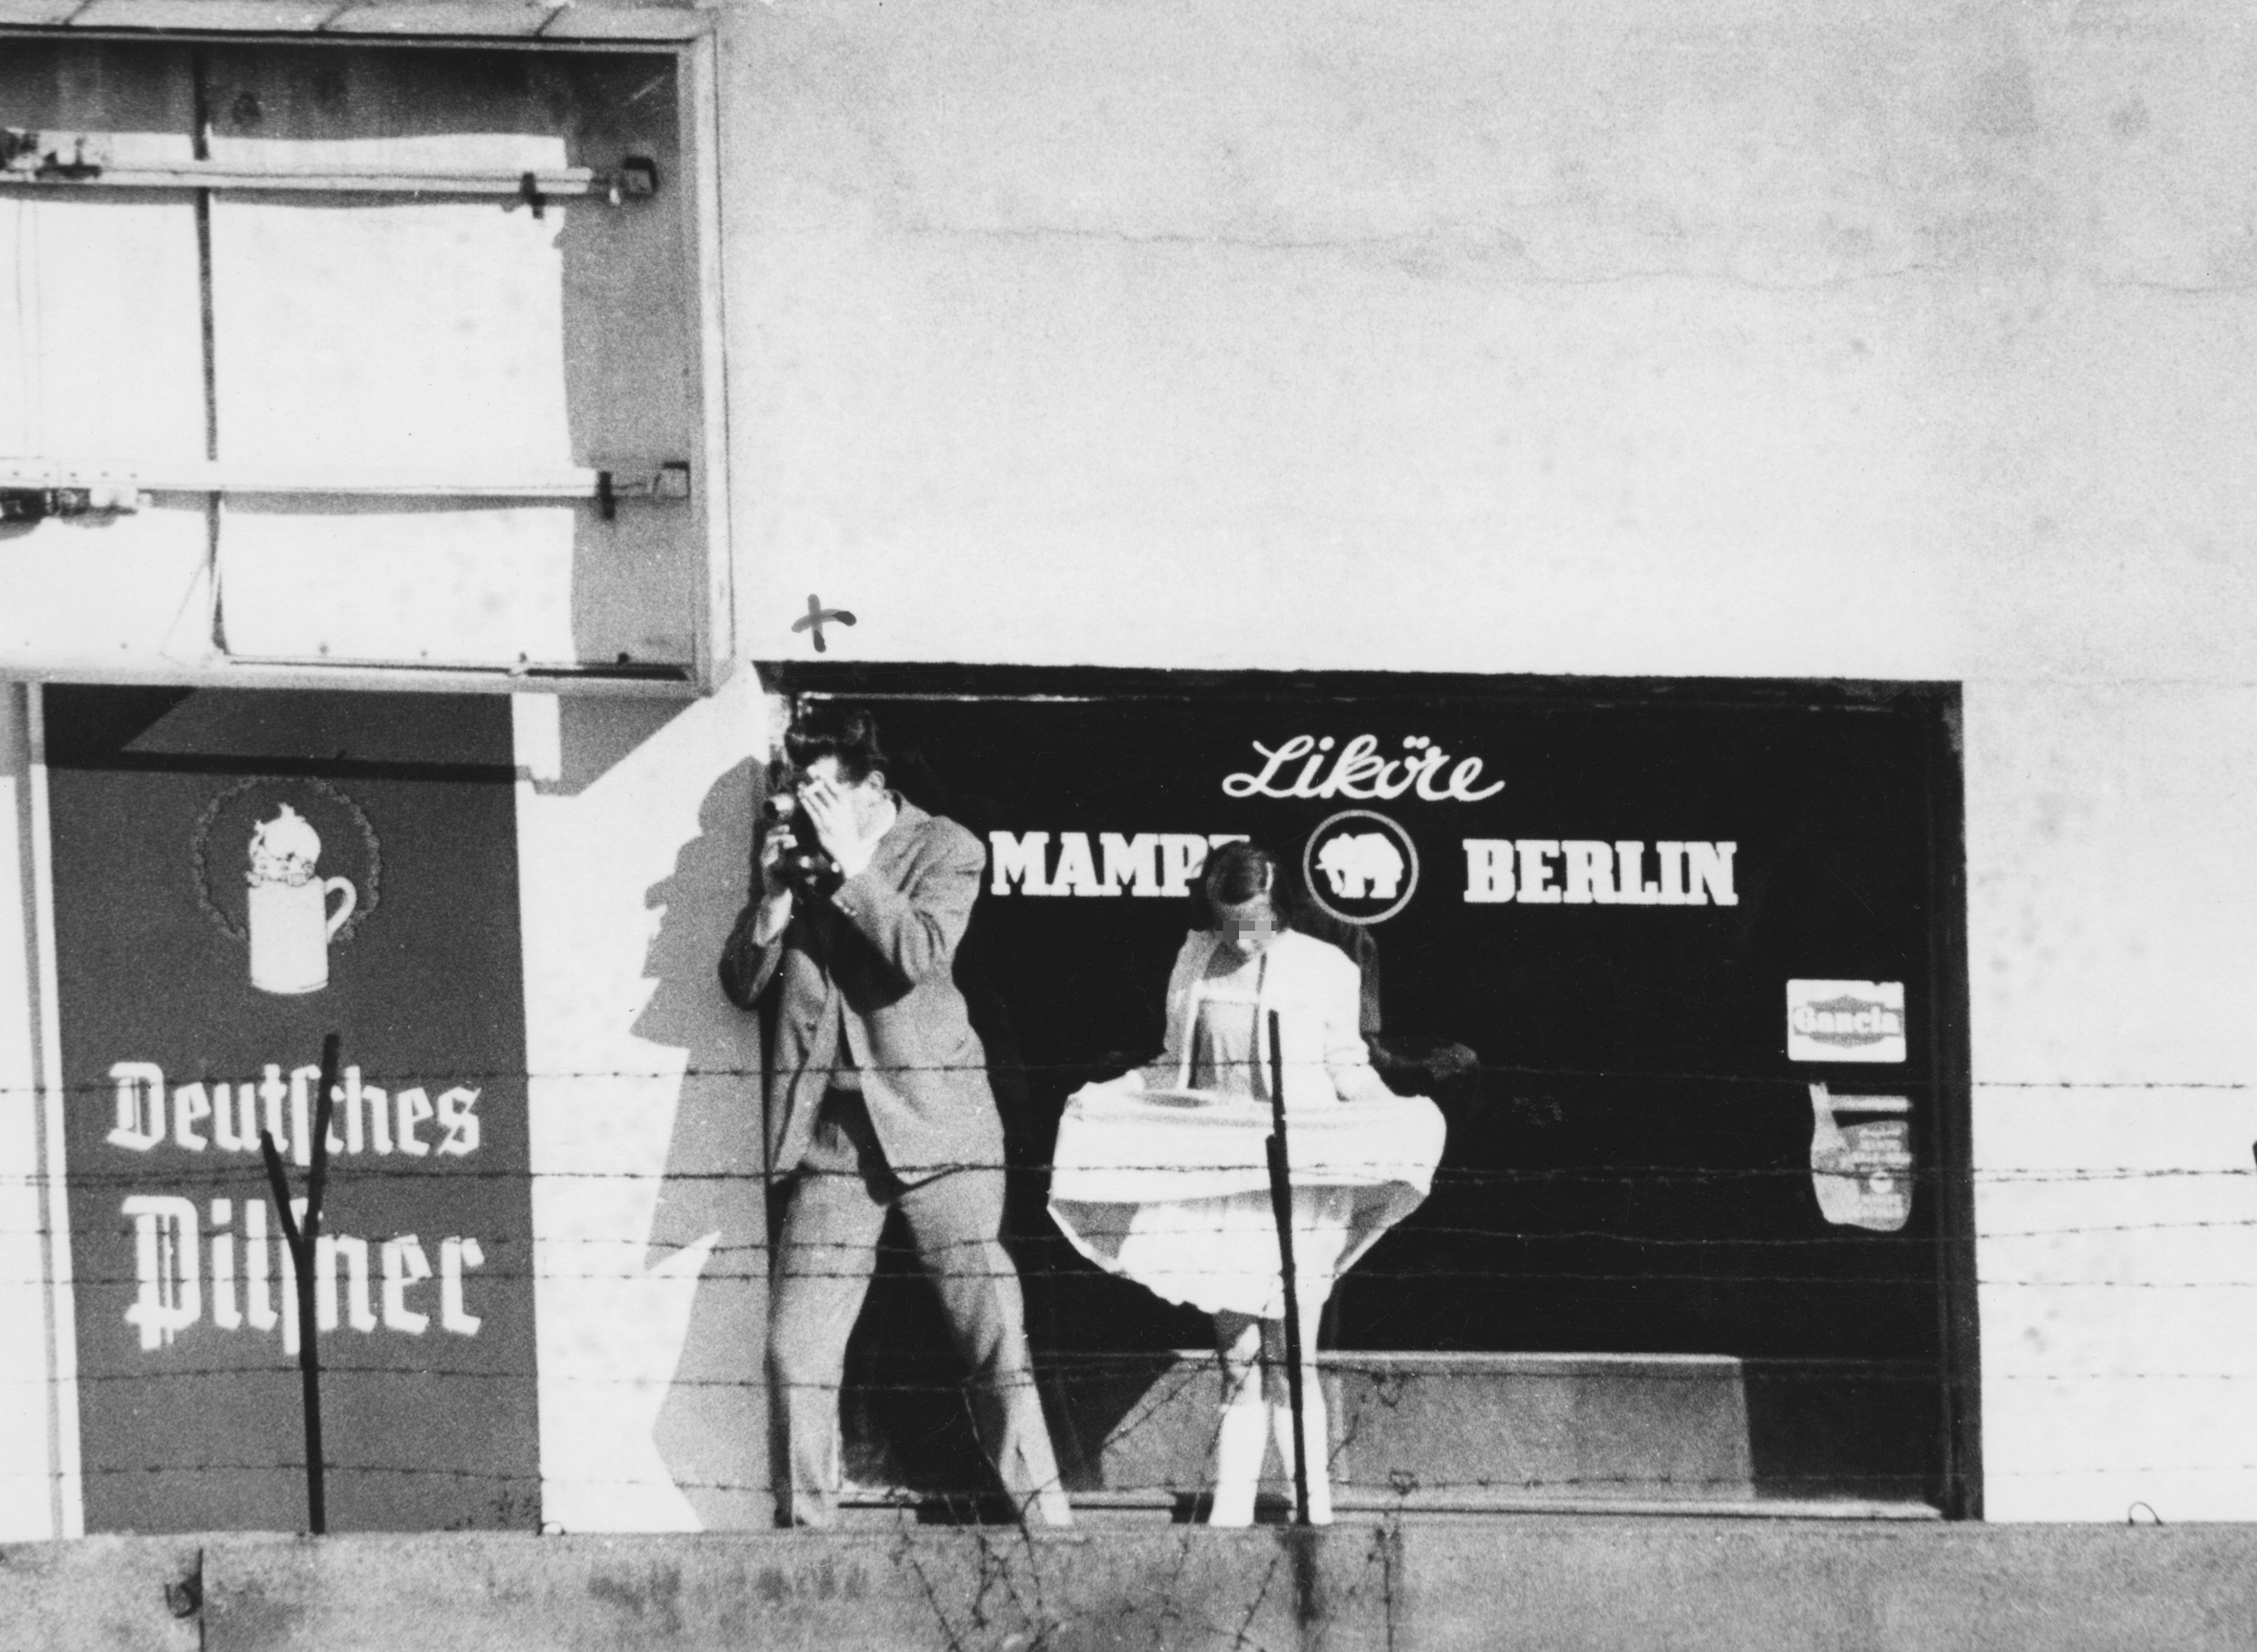 Observers of a possible escape incident in Berlin, 26th of August 1962]. Stasi Records Agency, Berlin, BStU MfS HA I 13255, Bild 0123 10.